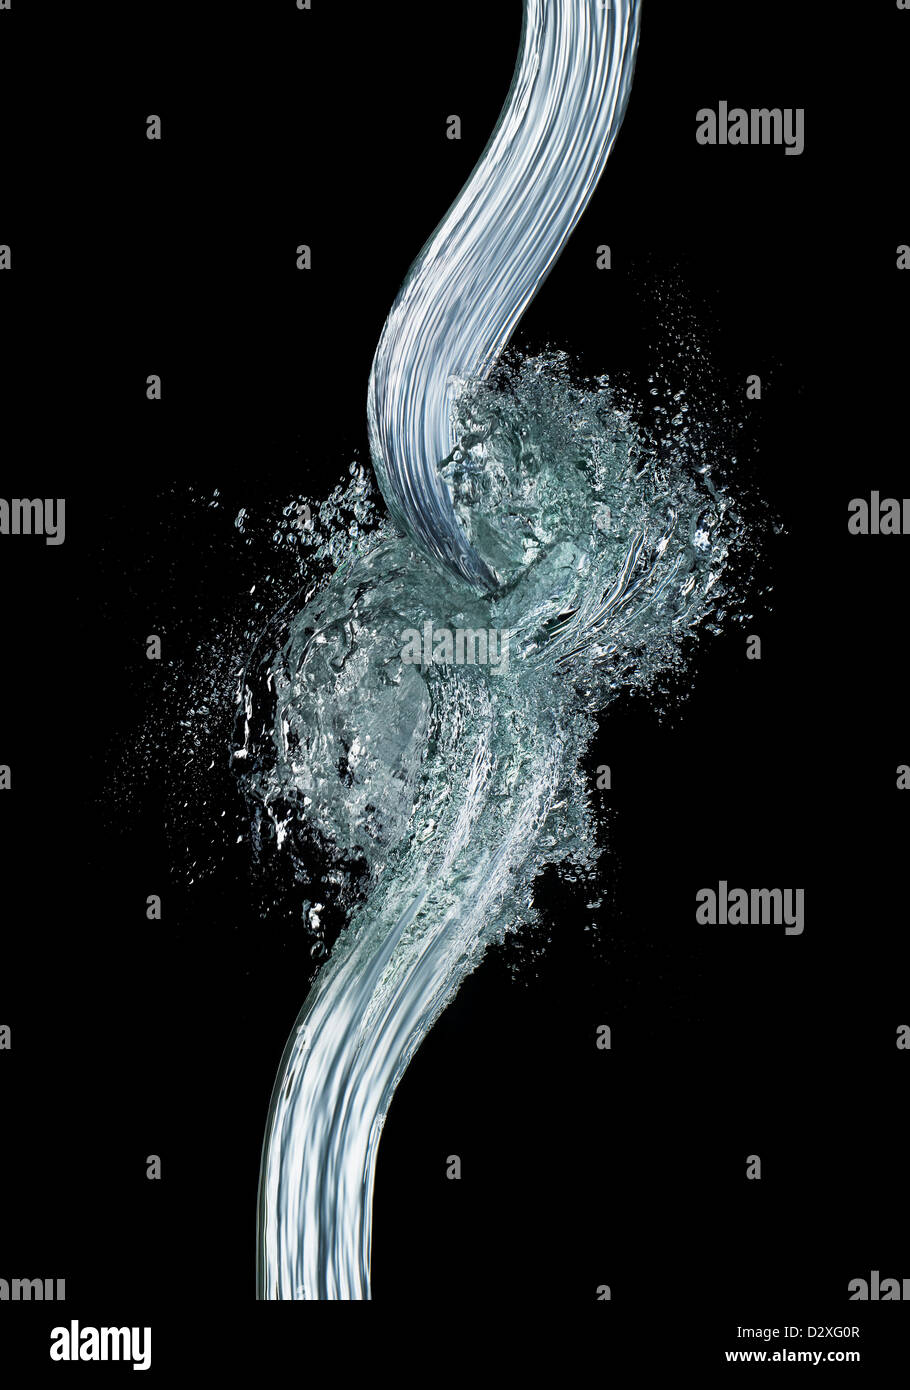 Wave pattern forming from water - Stock Image